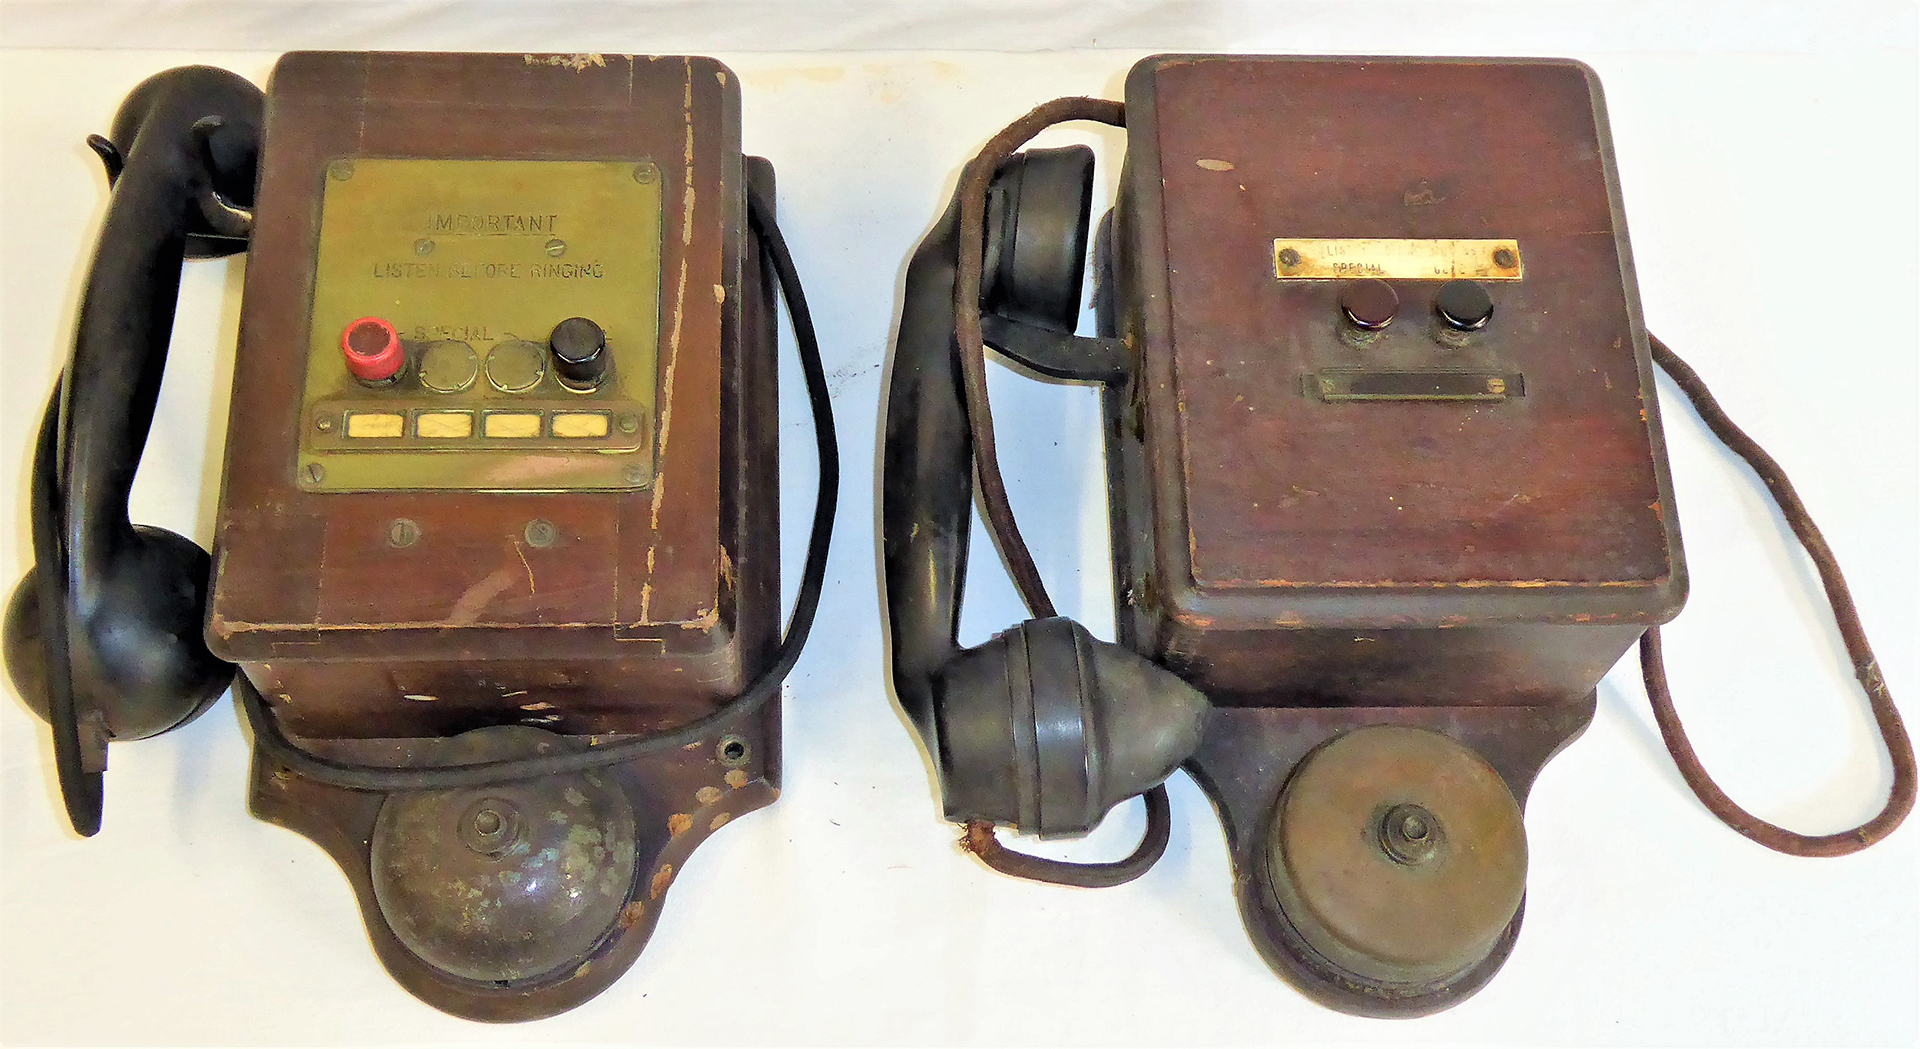 2 x WR two button telephones made by Ericson. Both complete in original condition.